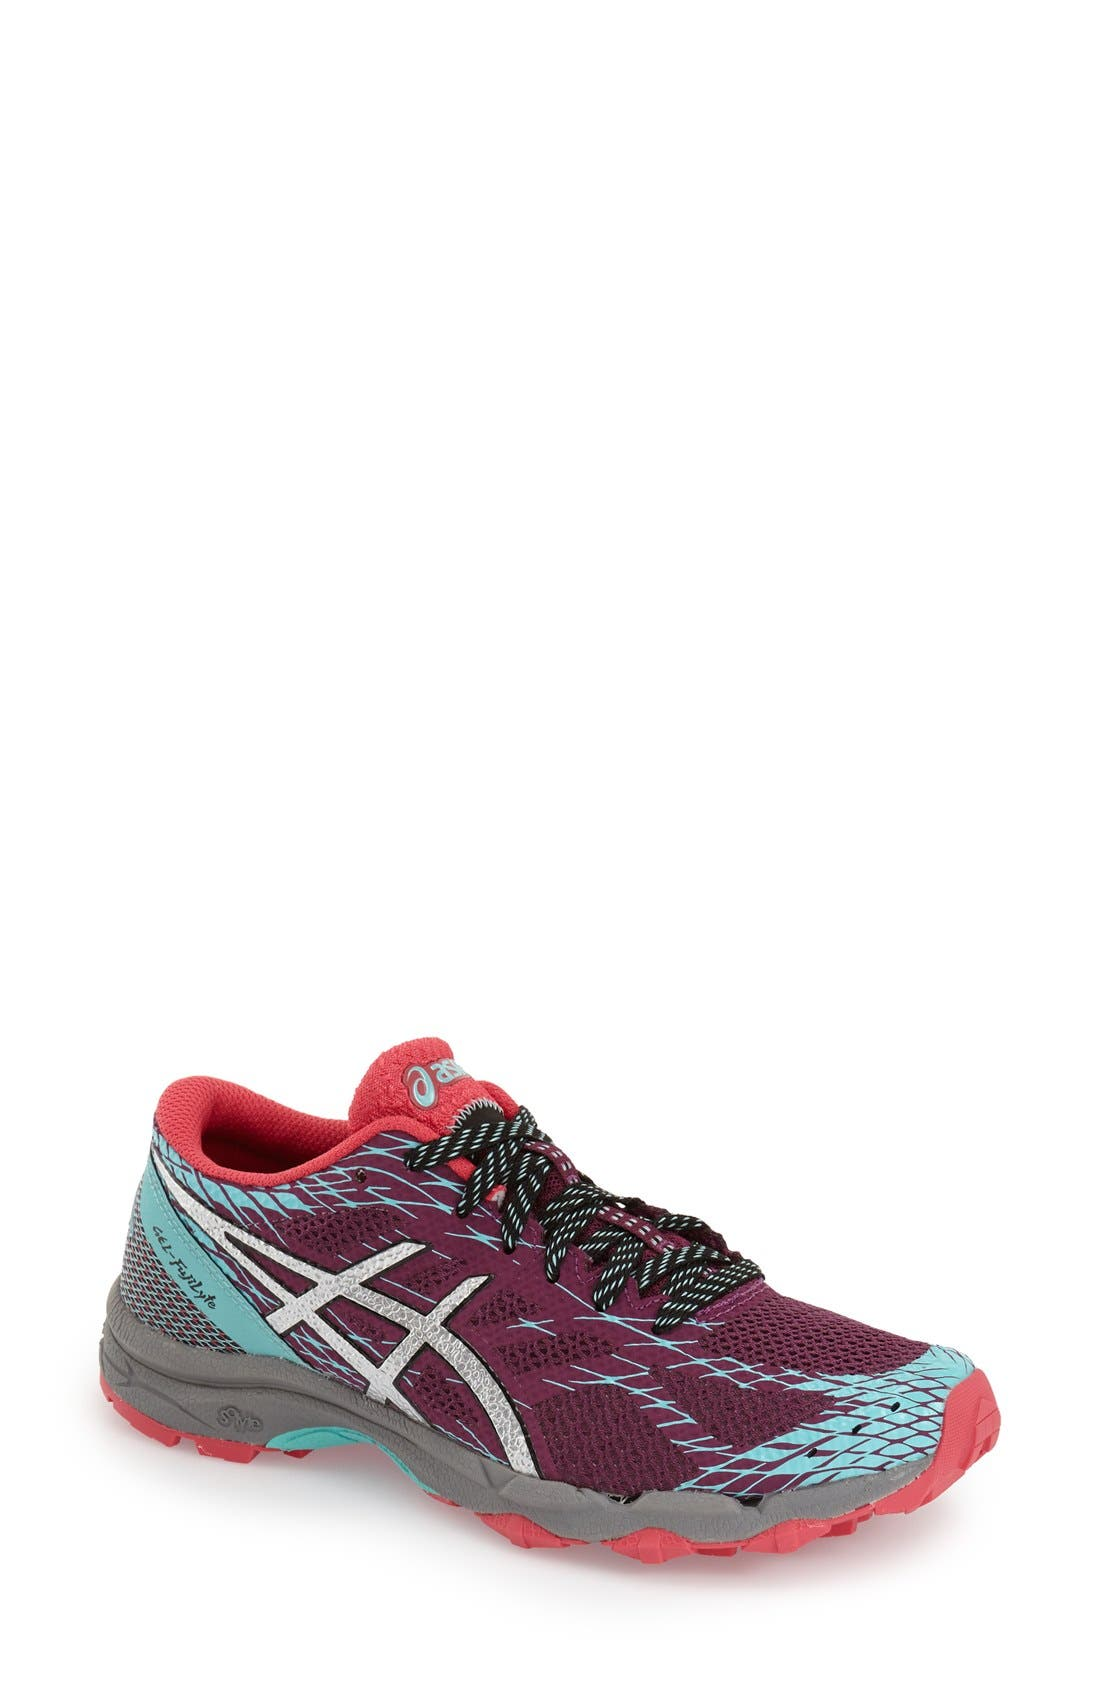 Main Image - ASICS® 'GEL-Fuji Lyte' Running Shoe (Women)